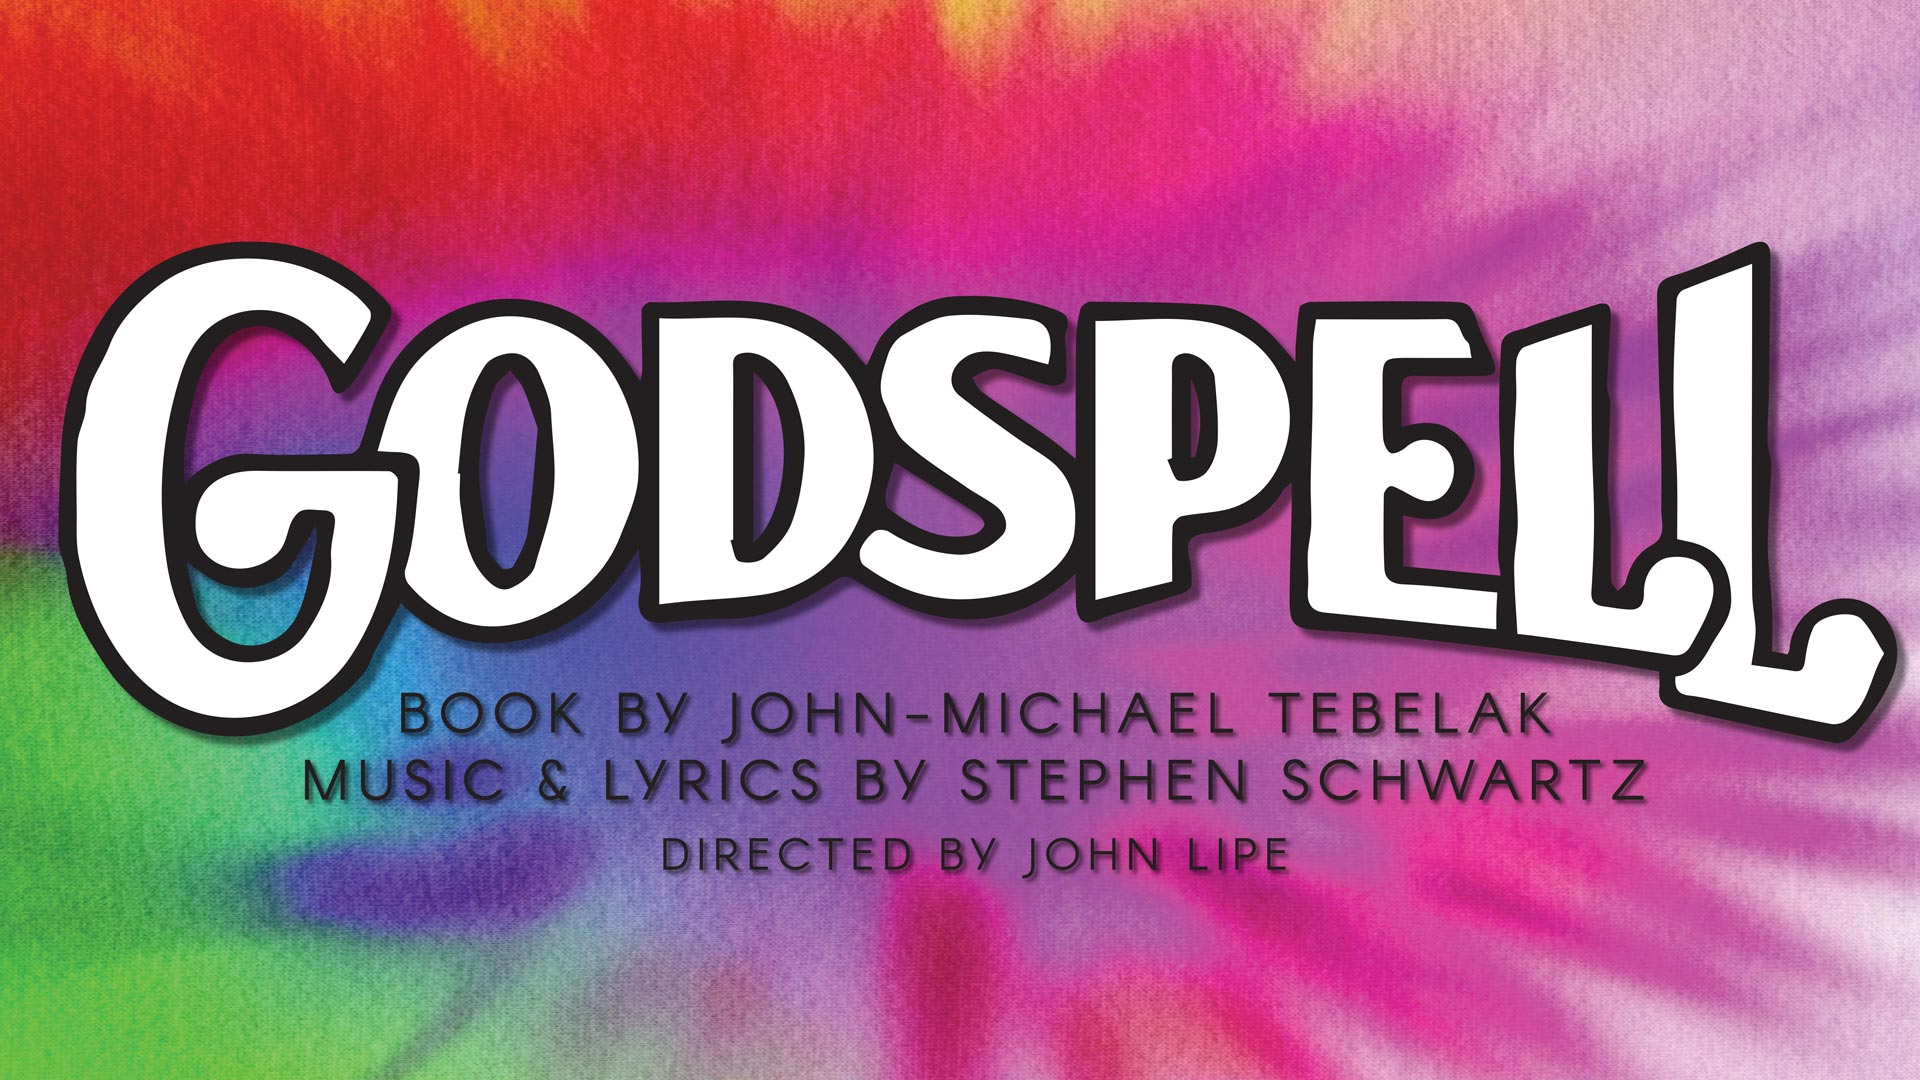 Godspell, by Stephen Schwartz and John-Michael Tebelak